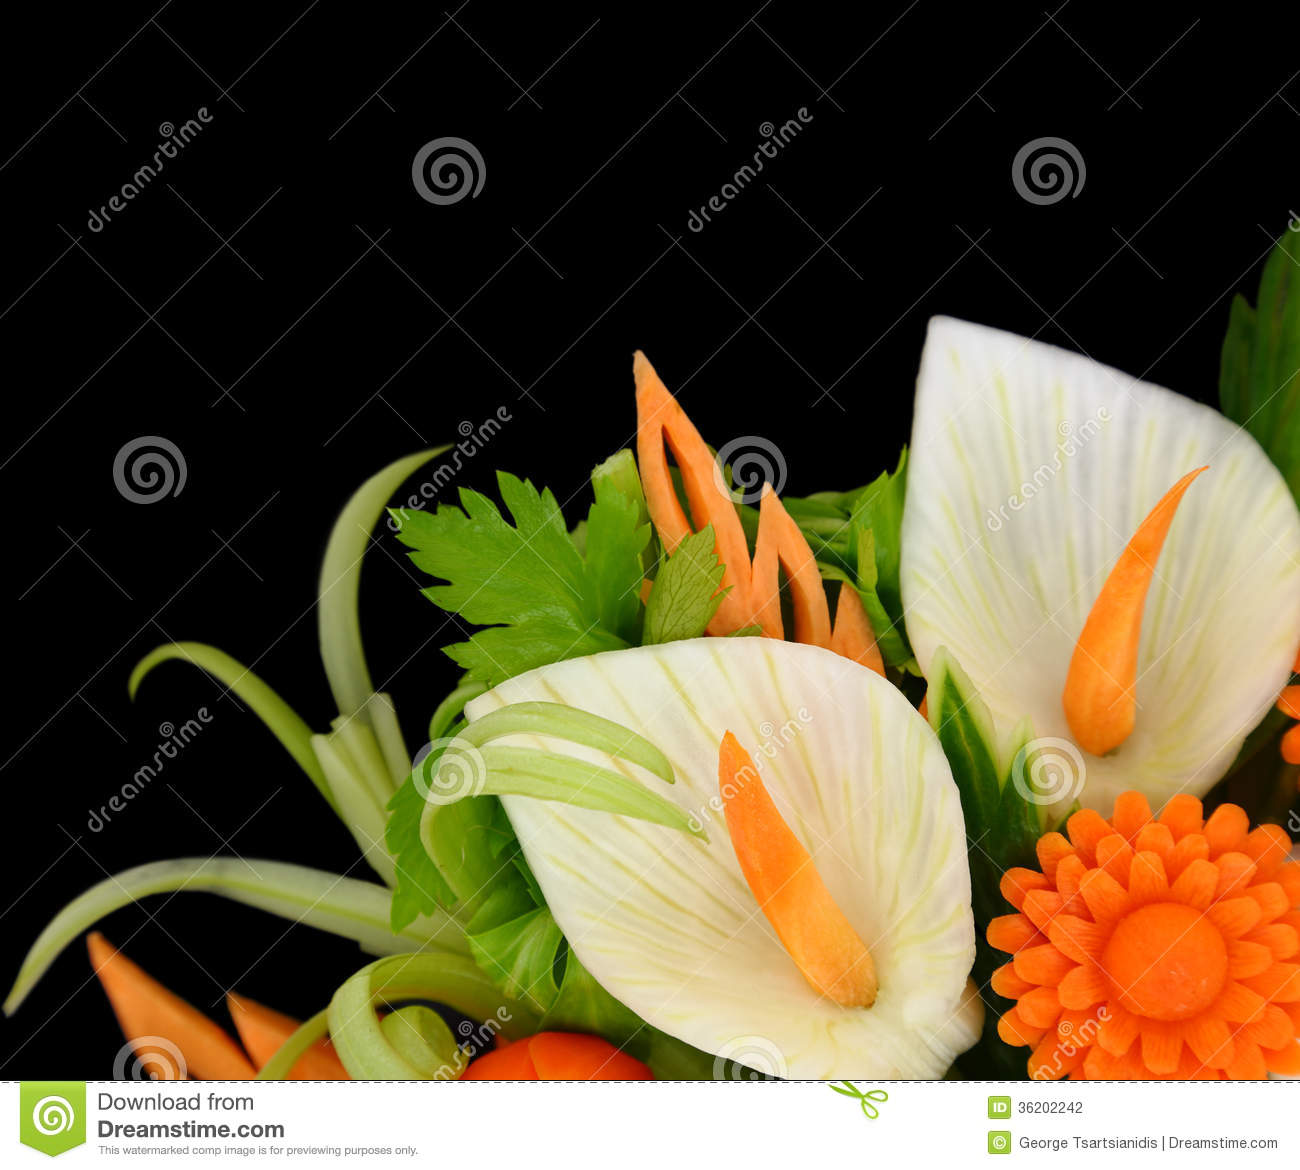 Vegetables carving stock photography image